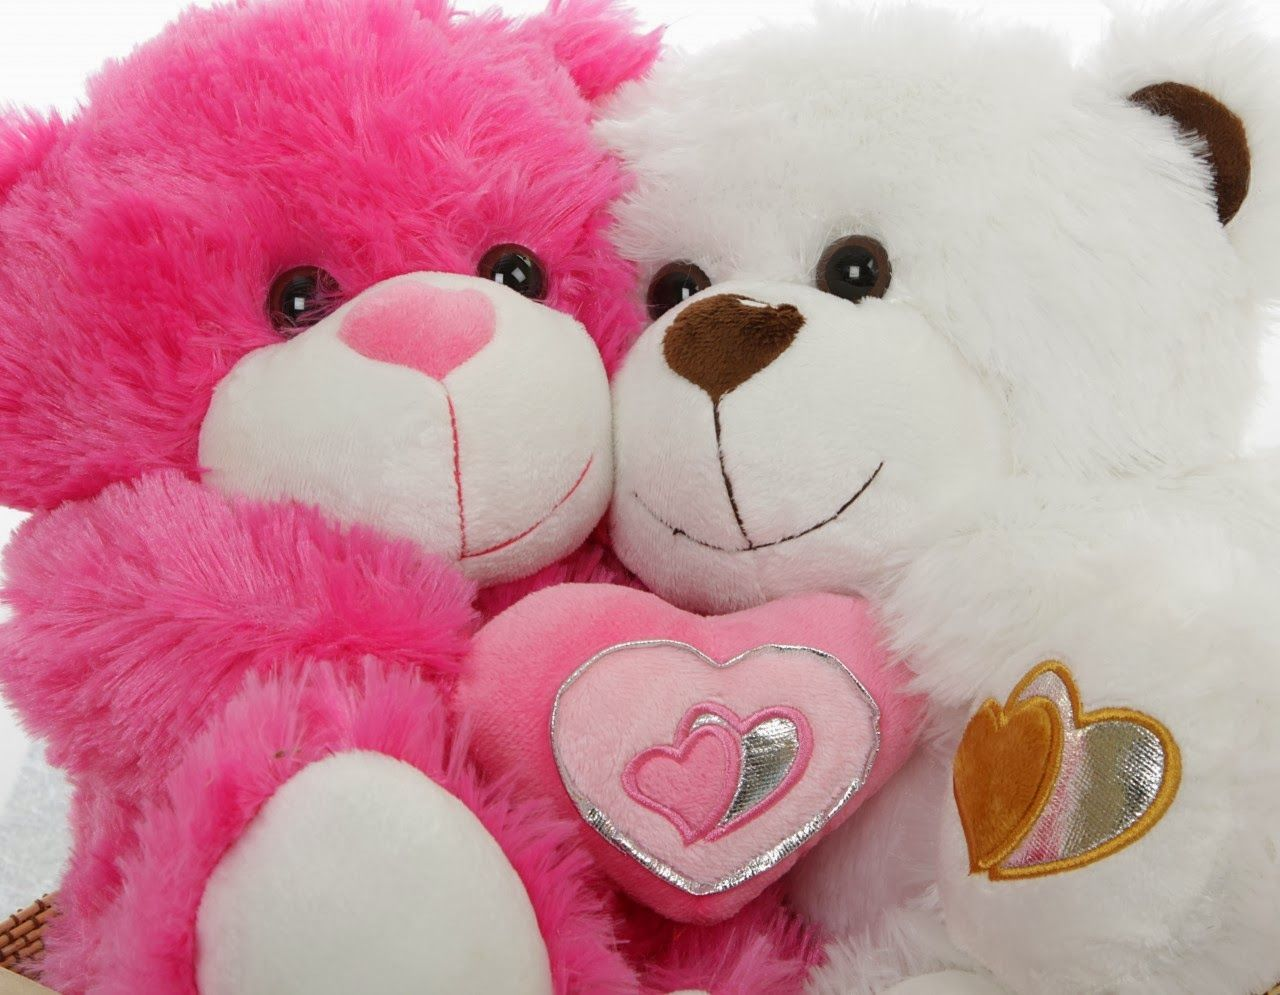 Cute teddy bear google search stuffed animals pinterest cute teddy bear google search stuffed animals pinterest voltagebd Image collections